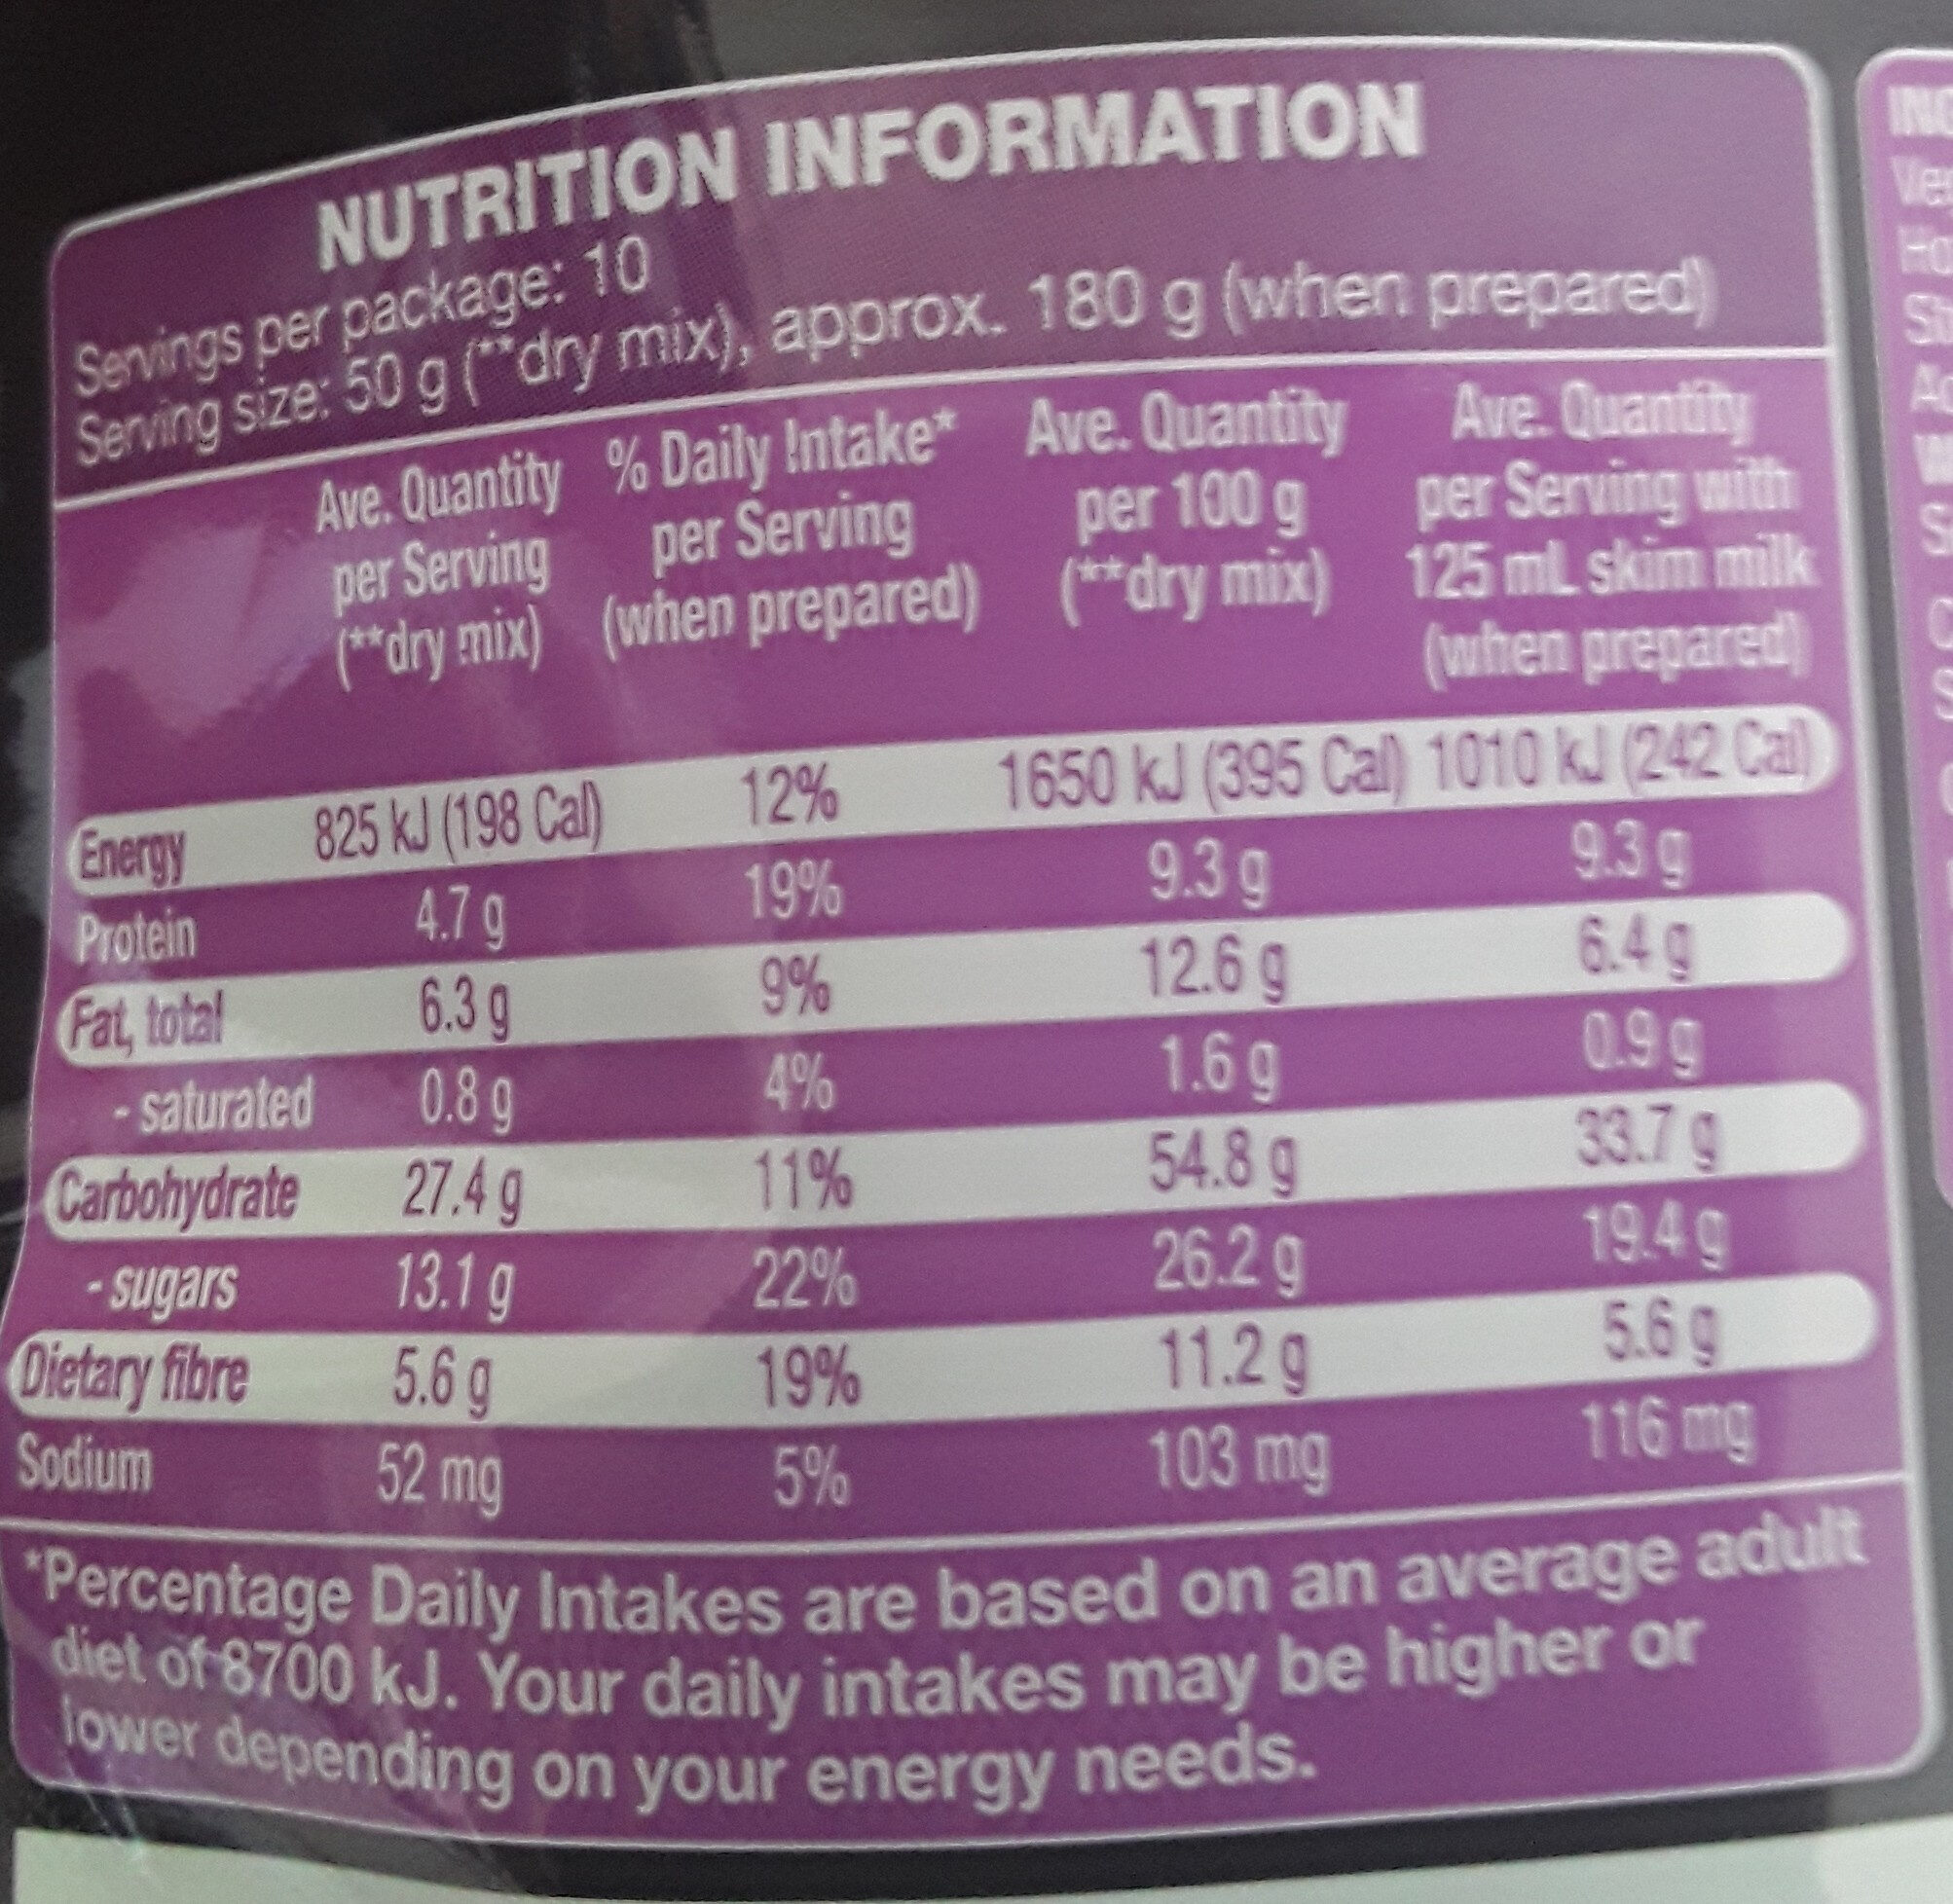 Goldenvale Premium Muesli Swiss Style Toasted - Nutrition facts - en